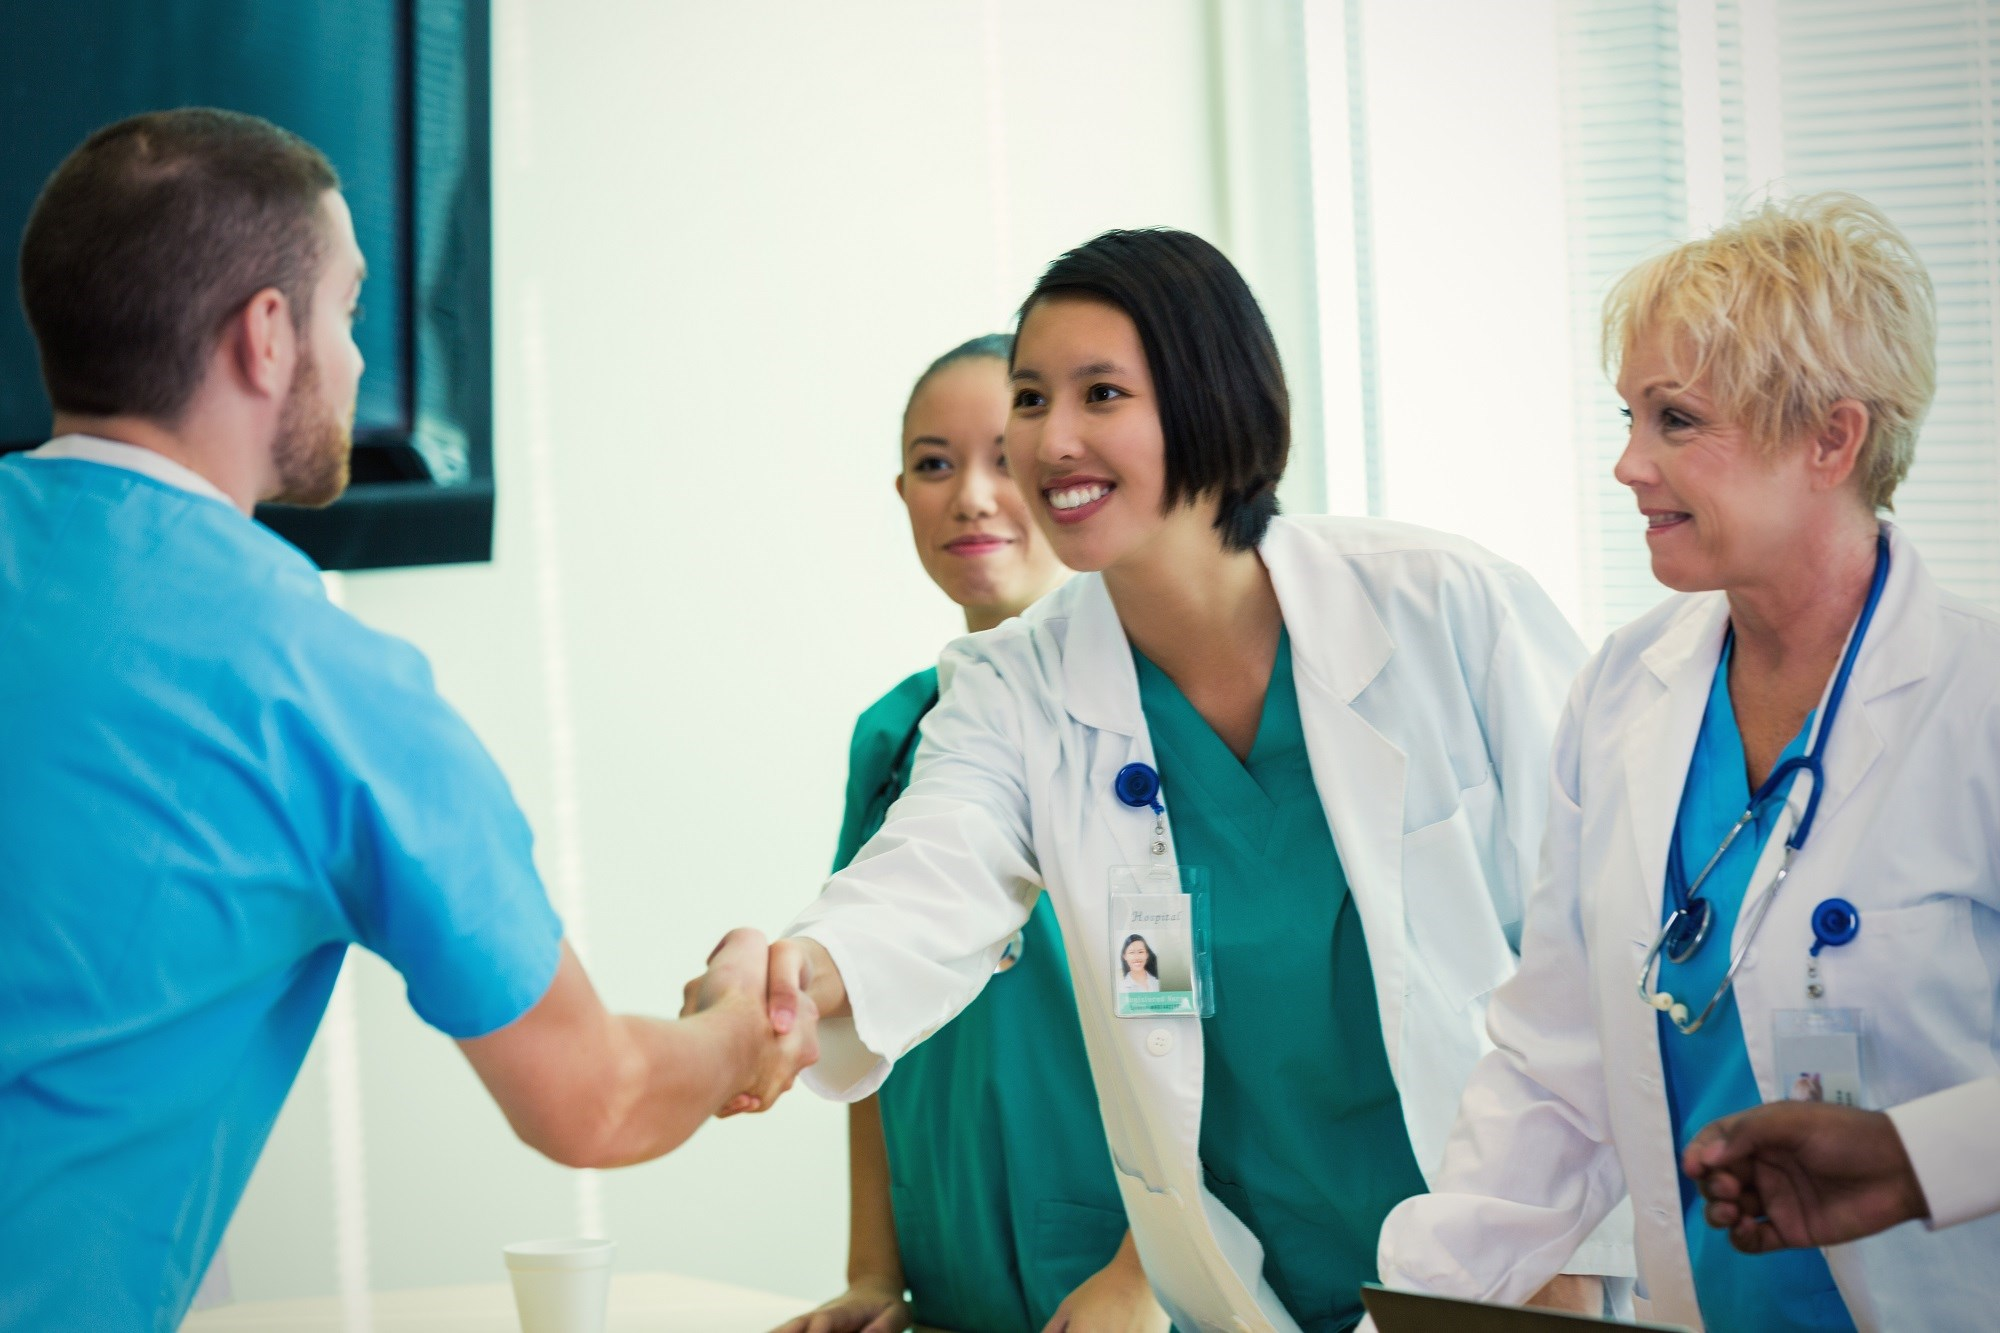 Interviews Can Help Ensure Physician Candidates Fit Culture